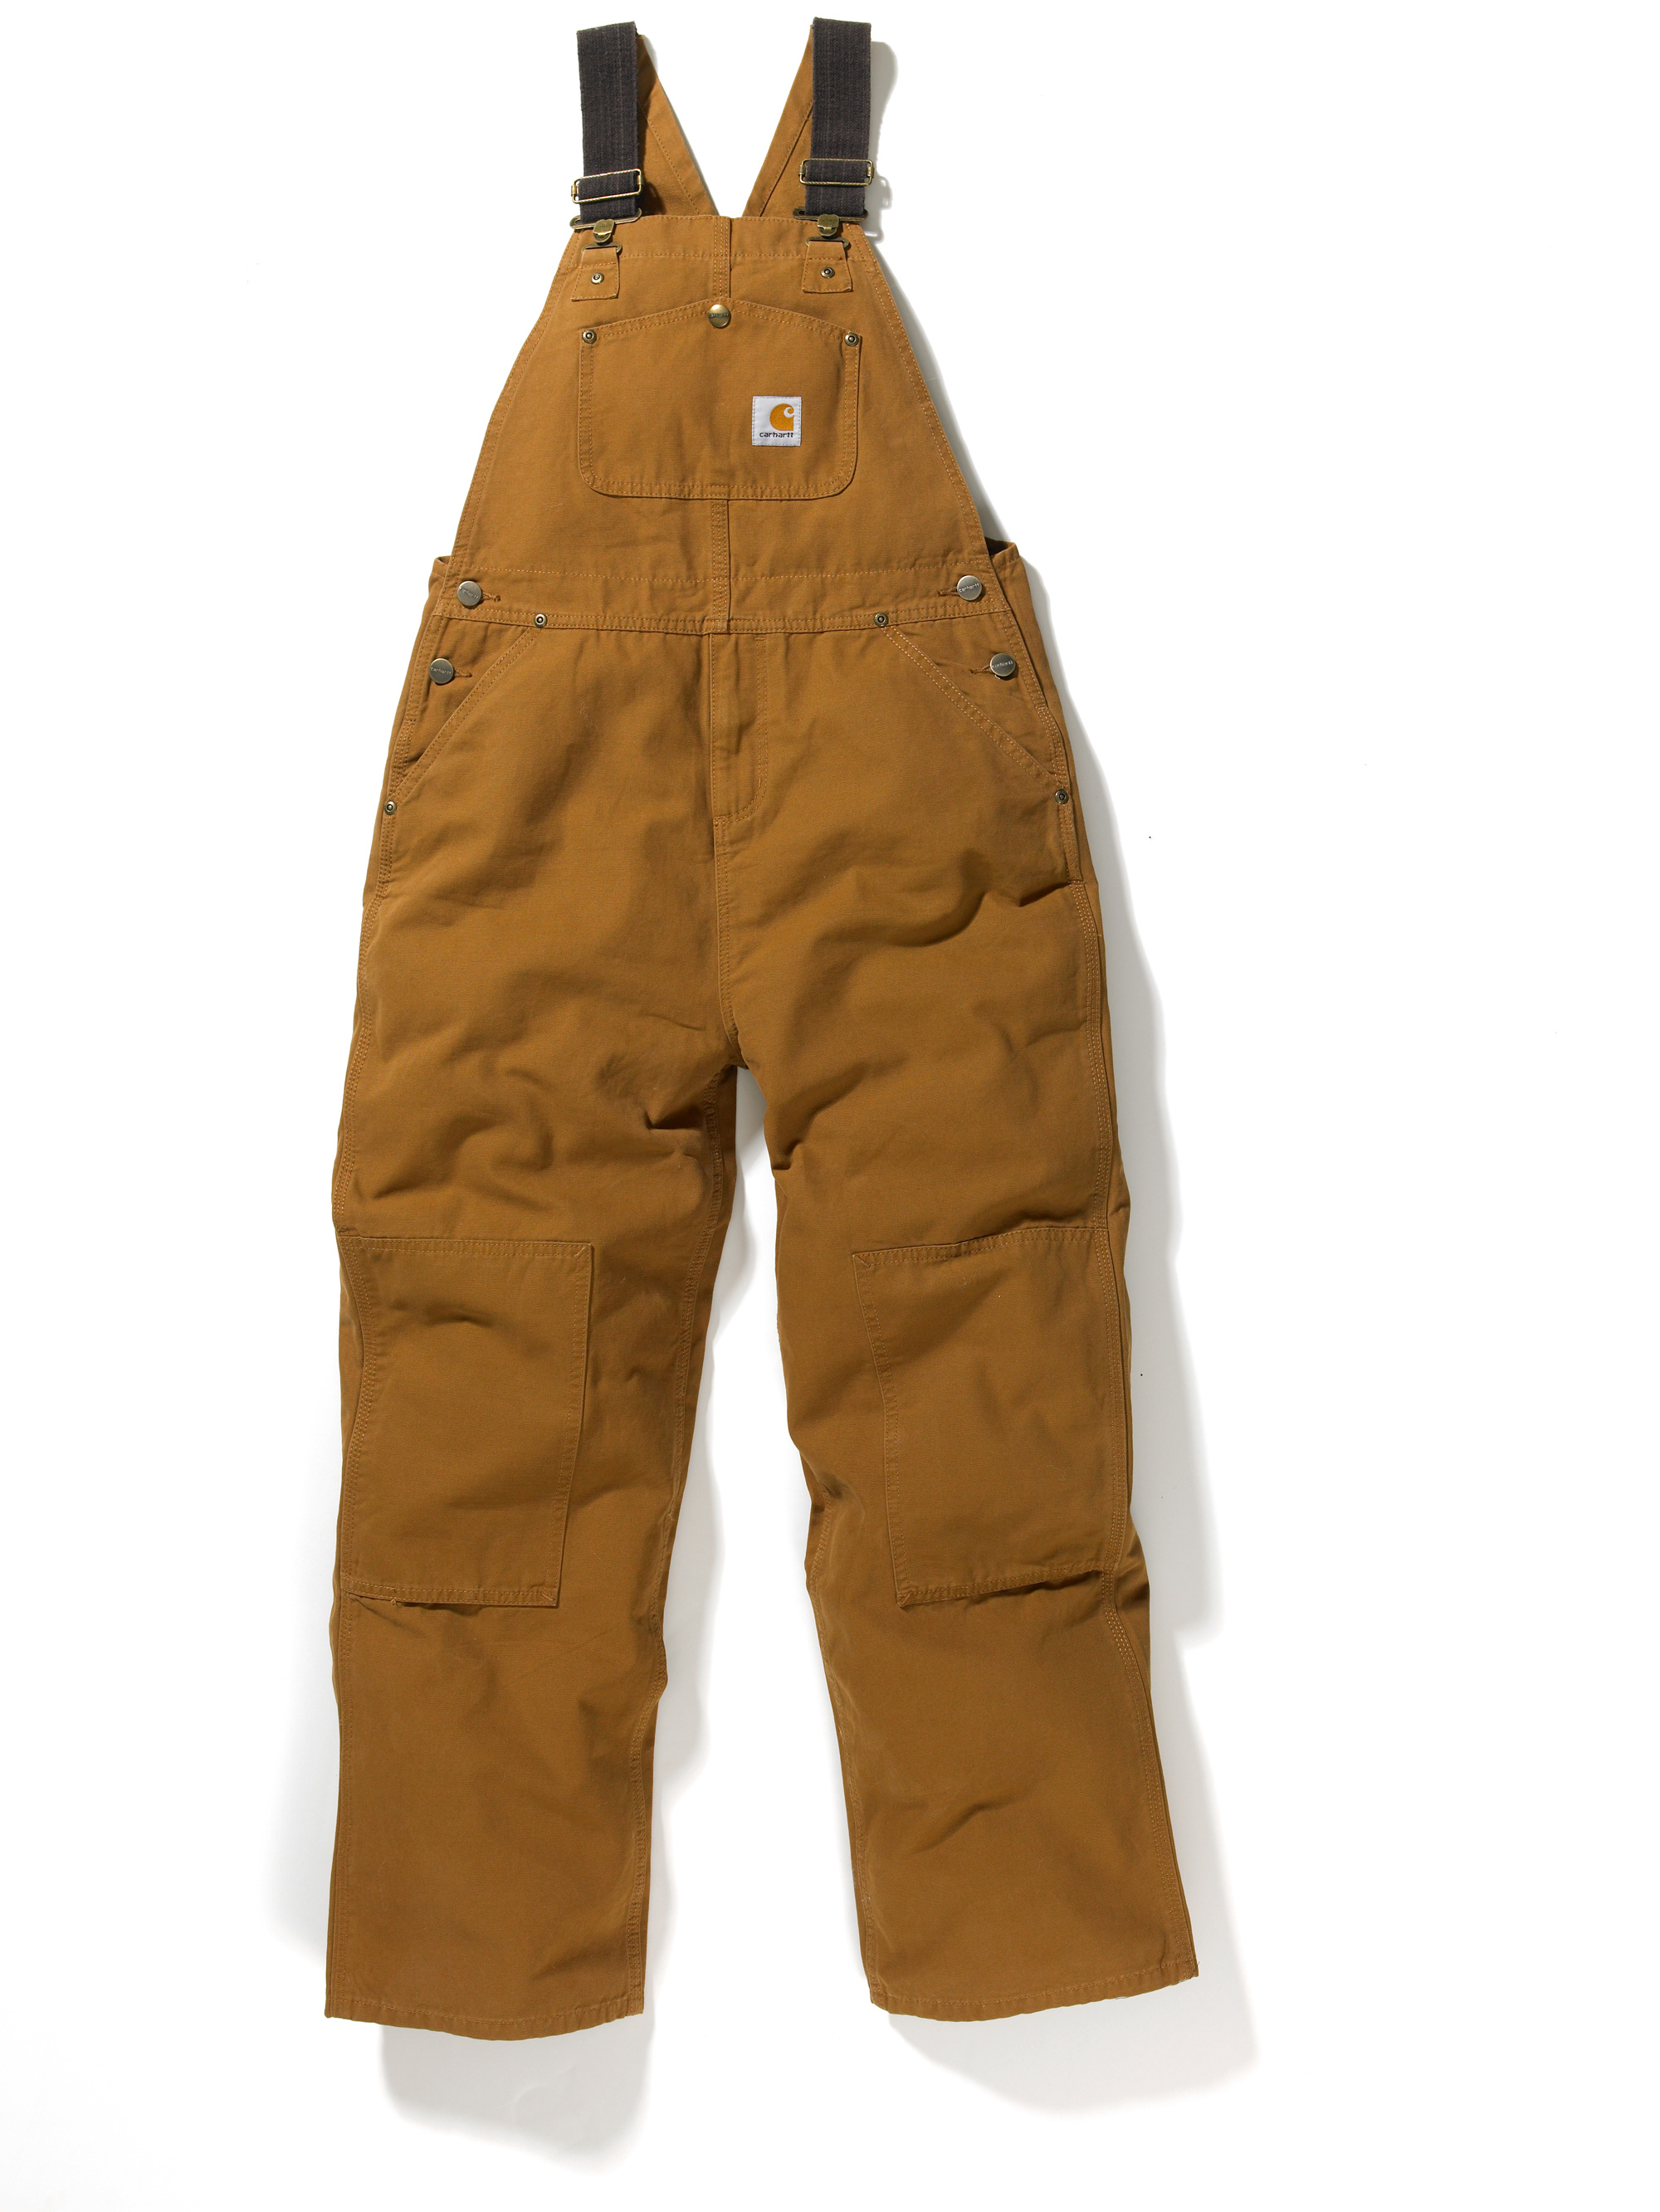 Carhartt Boys' Duck Washed Bib Overall Sizes 4-7 CM8603